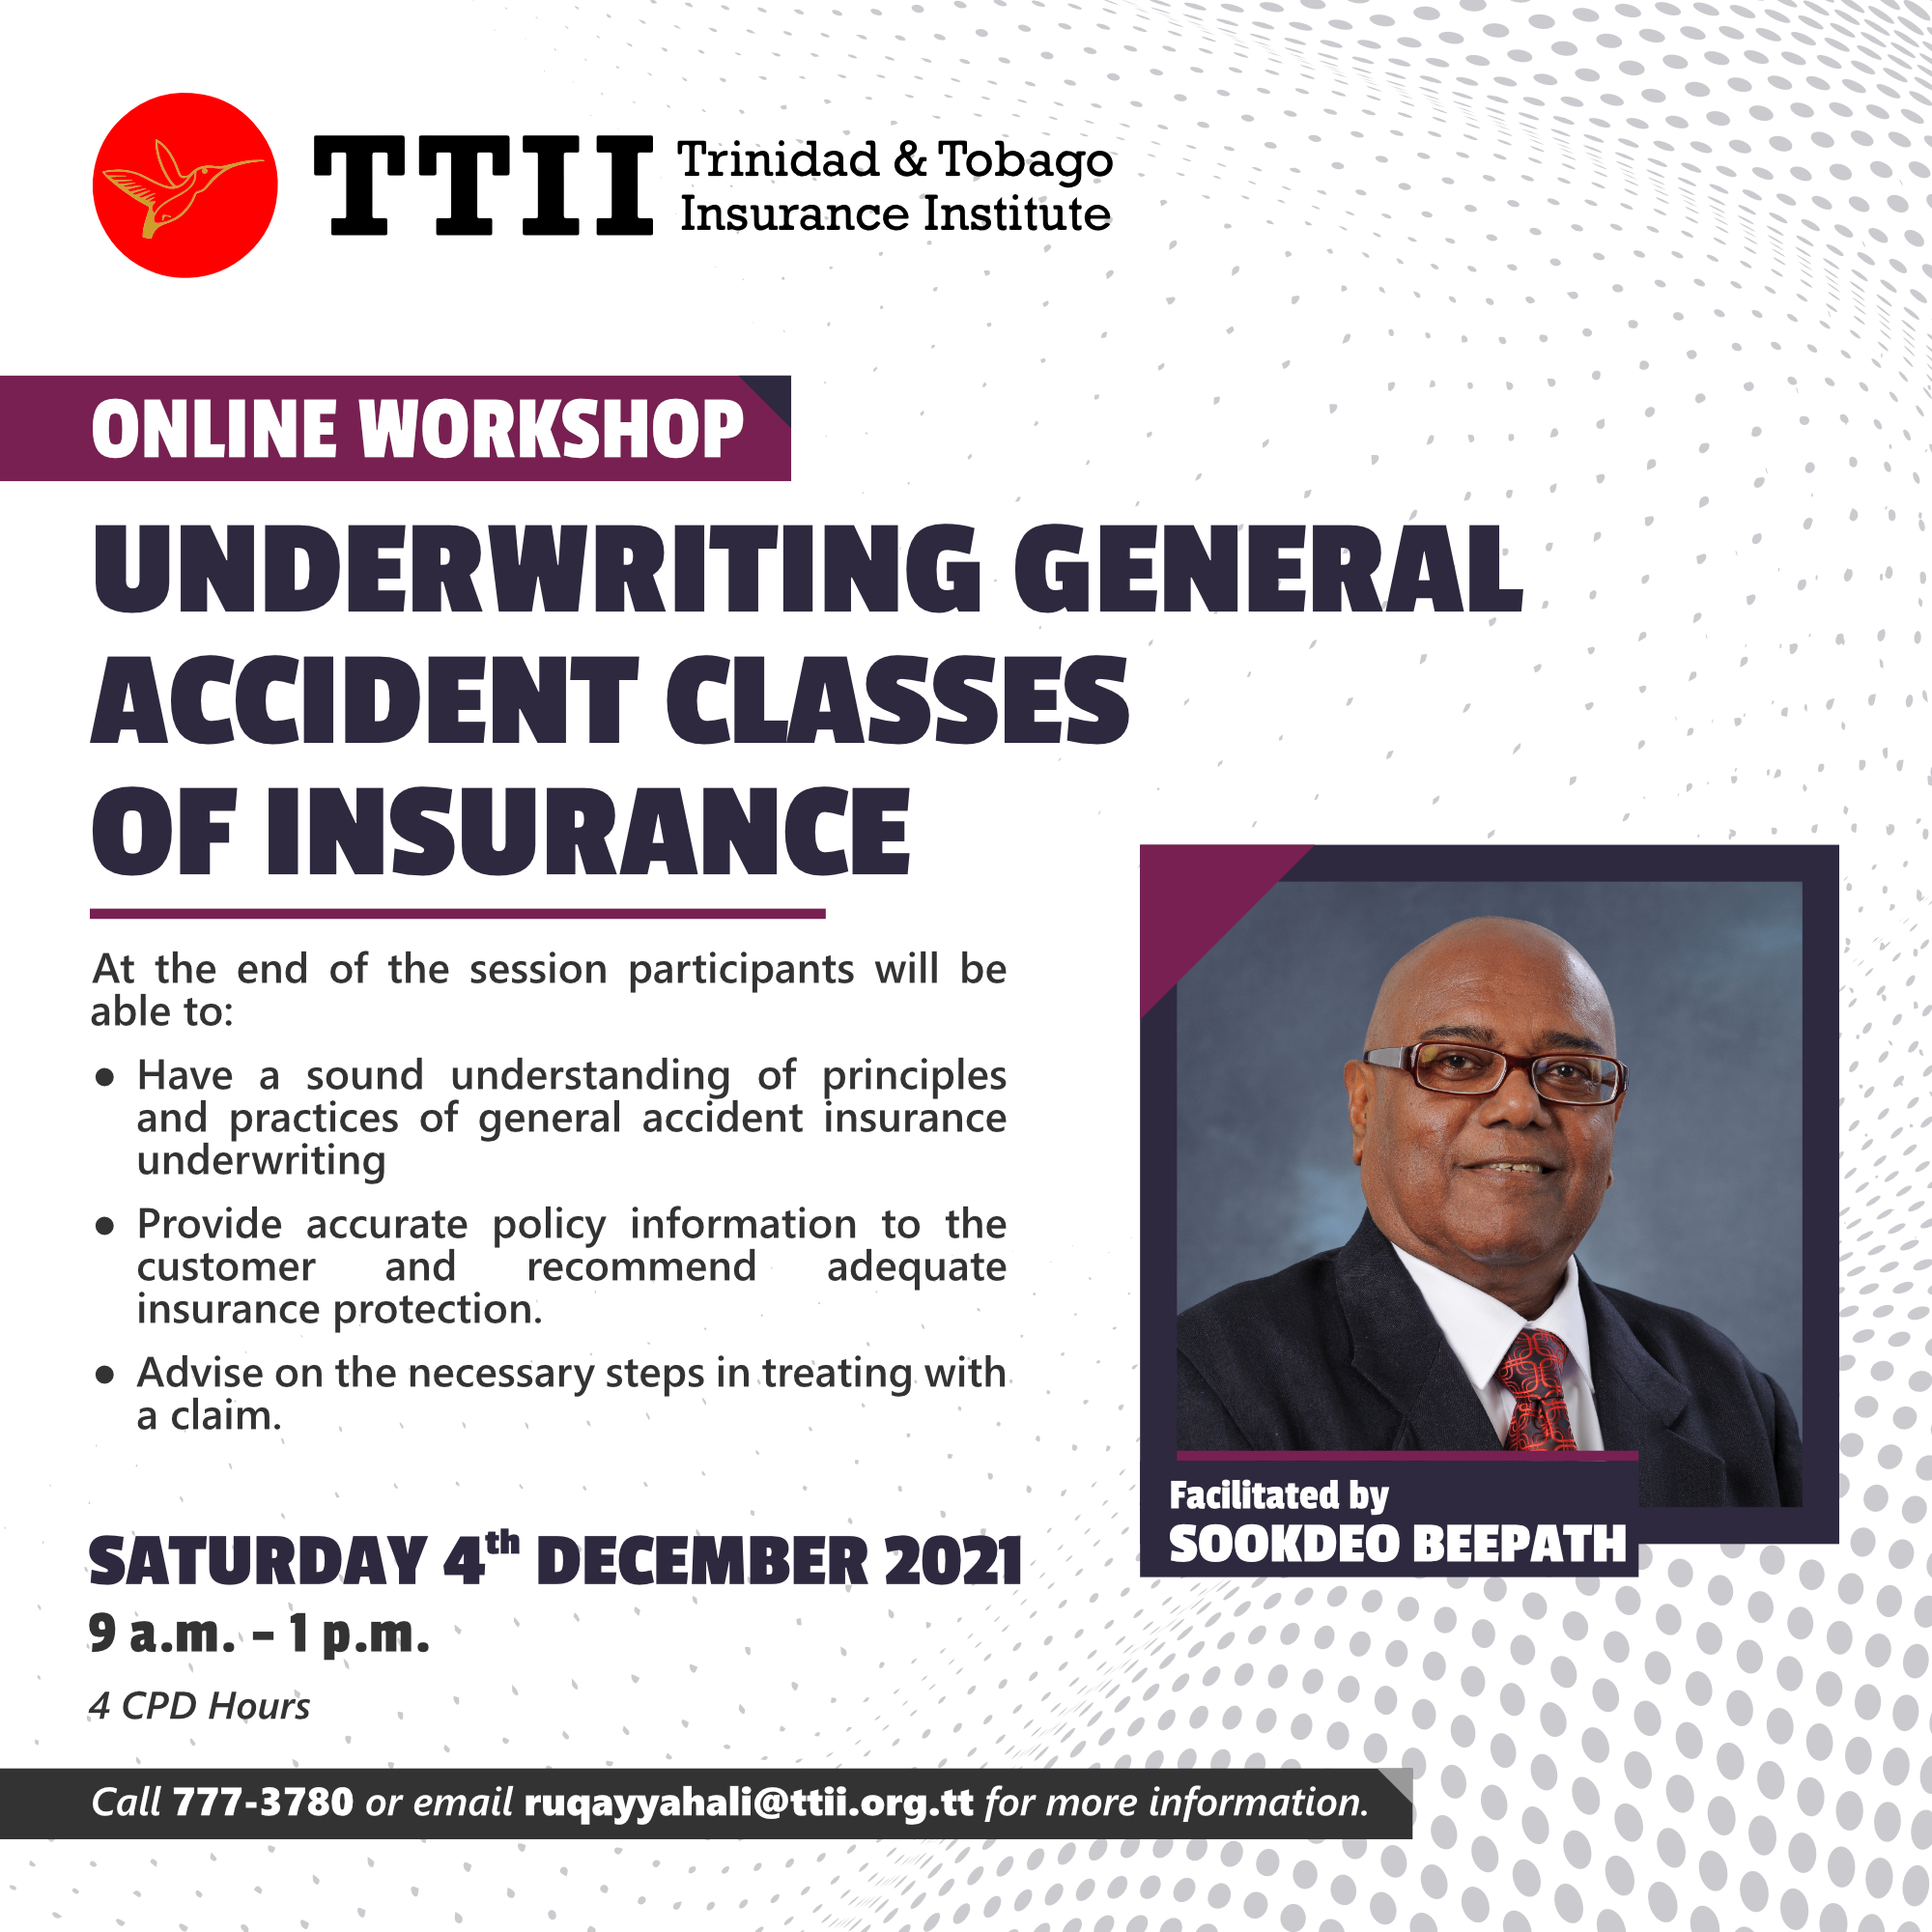 Underwriting General Accident Classes of Insurance